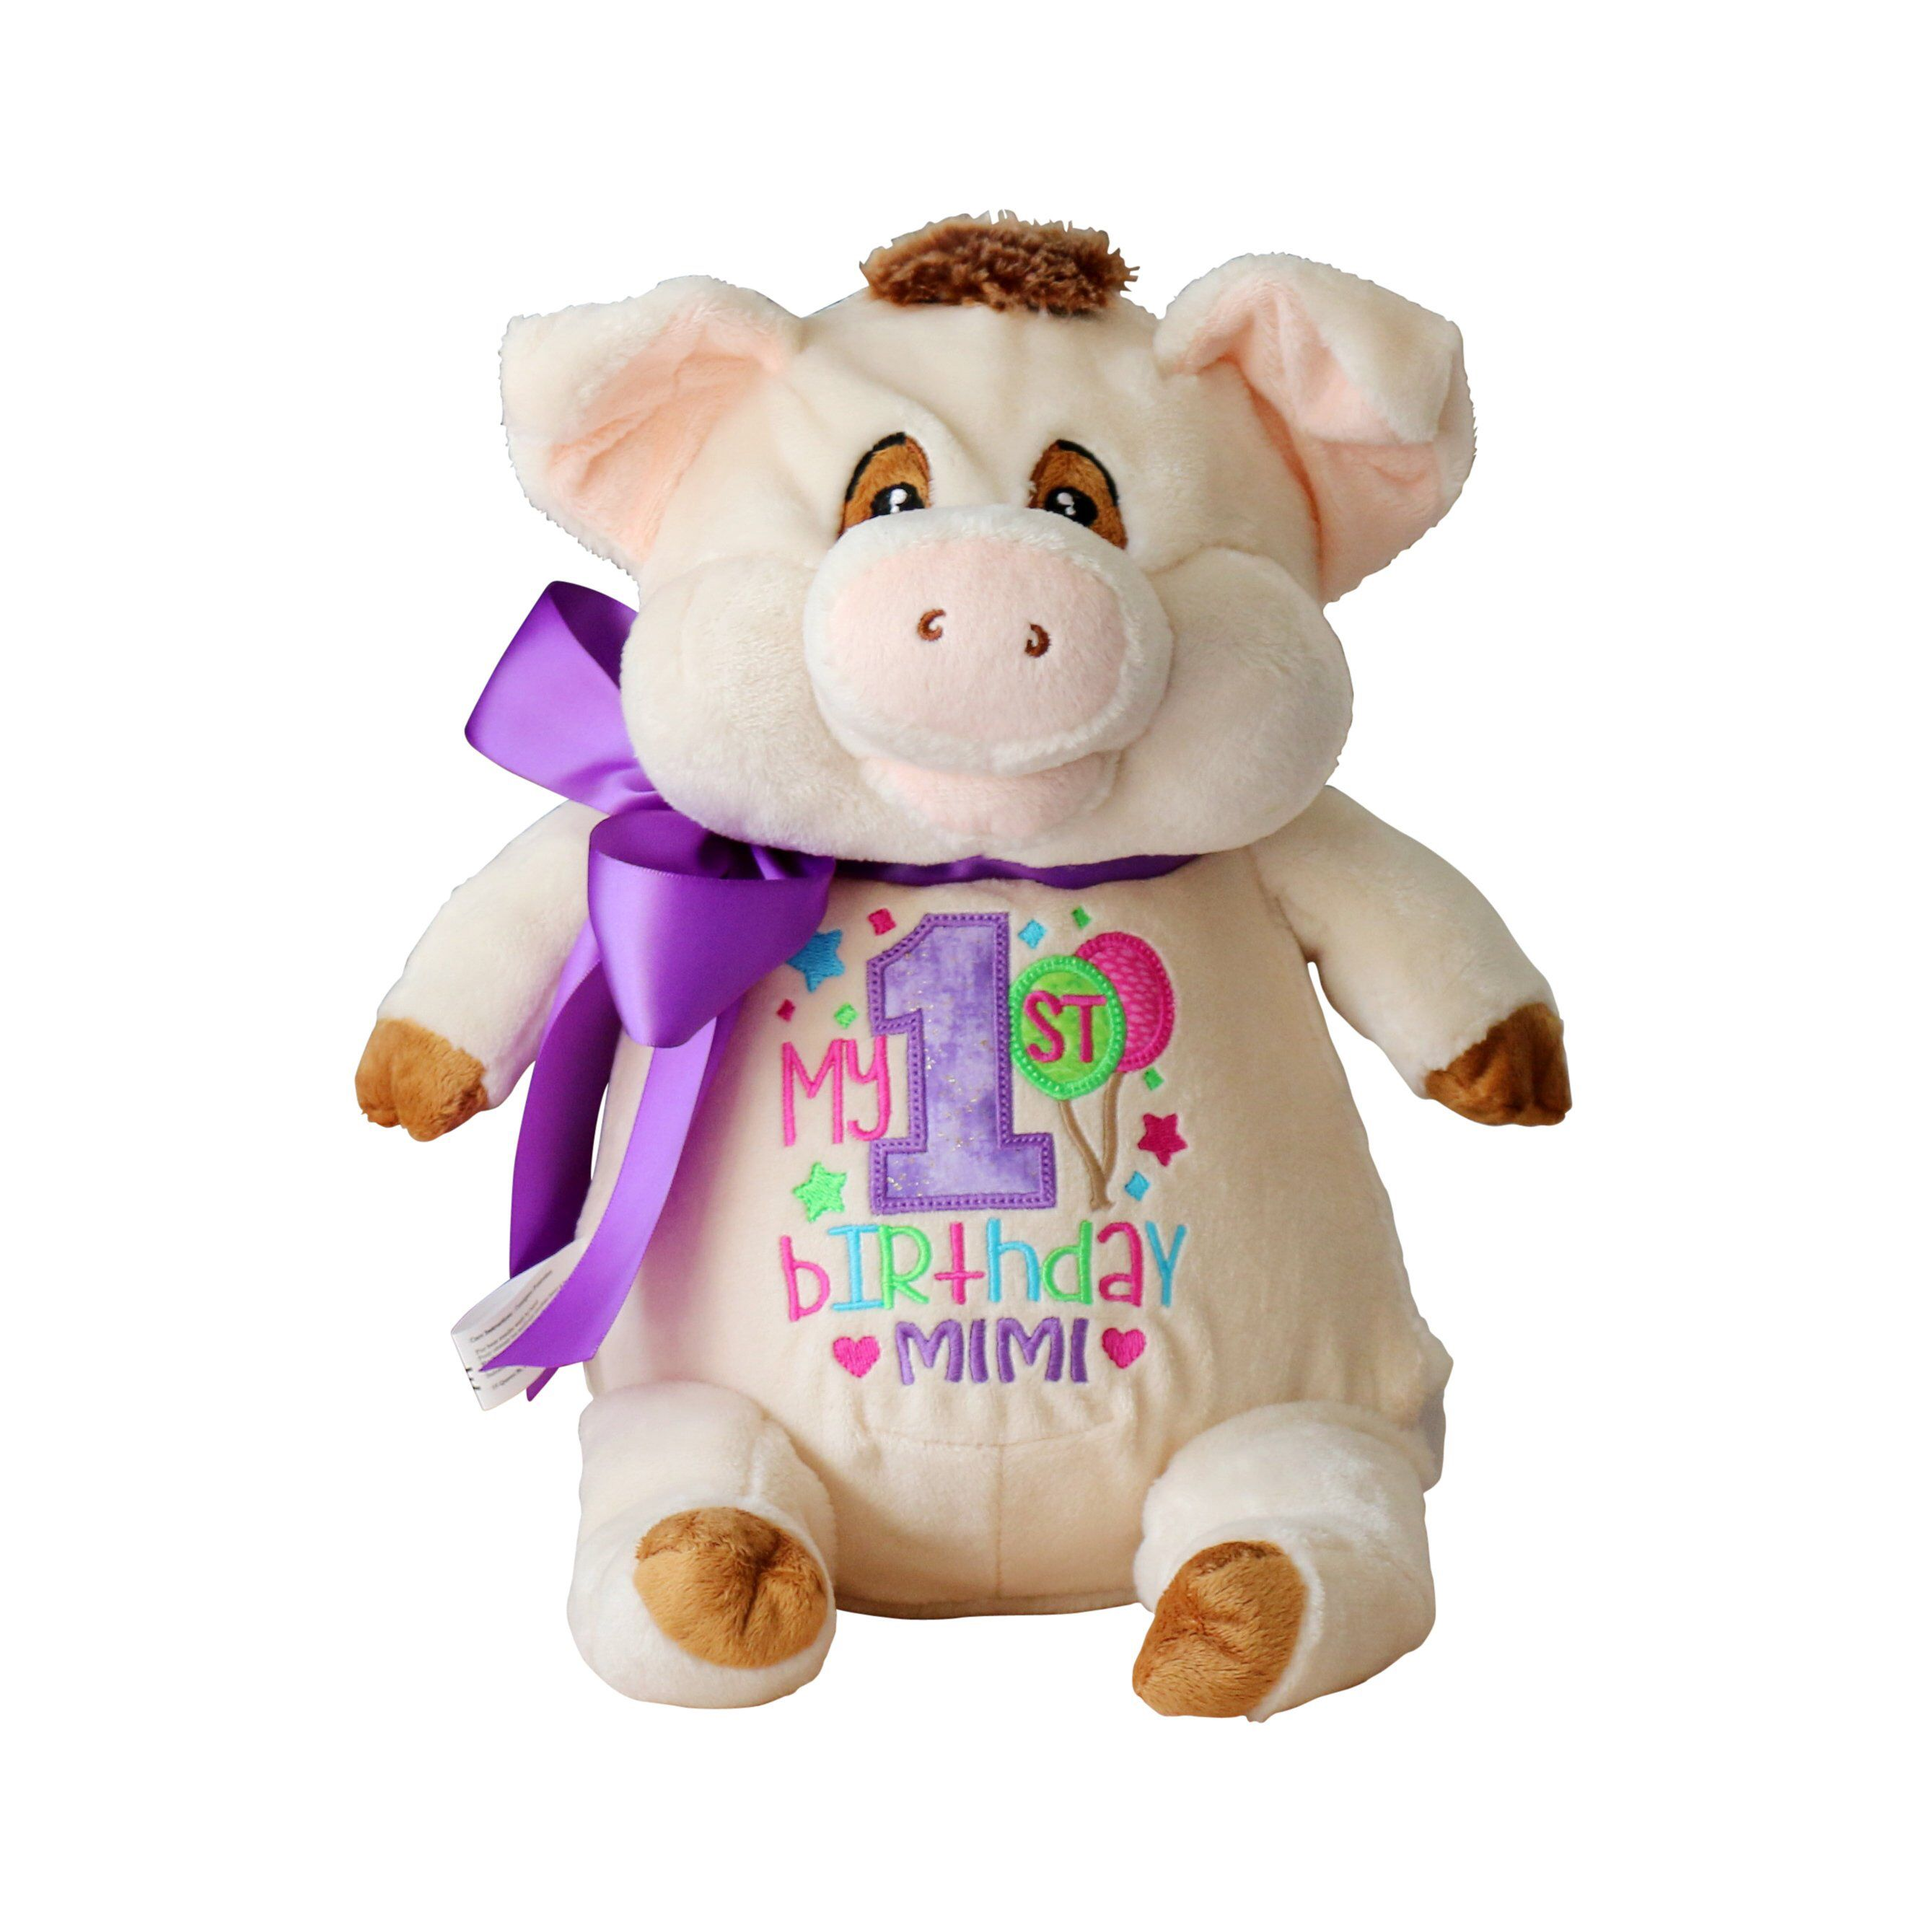 Predownload: Personalized Stuffed Animal Custom Birthday Gift Embroidered Etsy Personalized Stuffed Animals Custom Birthday Gifts New Baby Products [ 2678 x 2671 Pixel ]